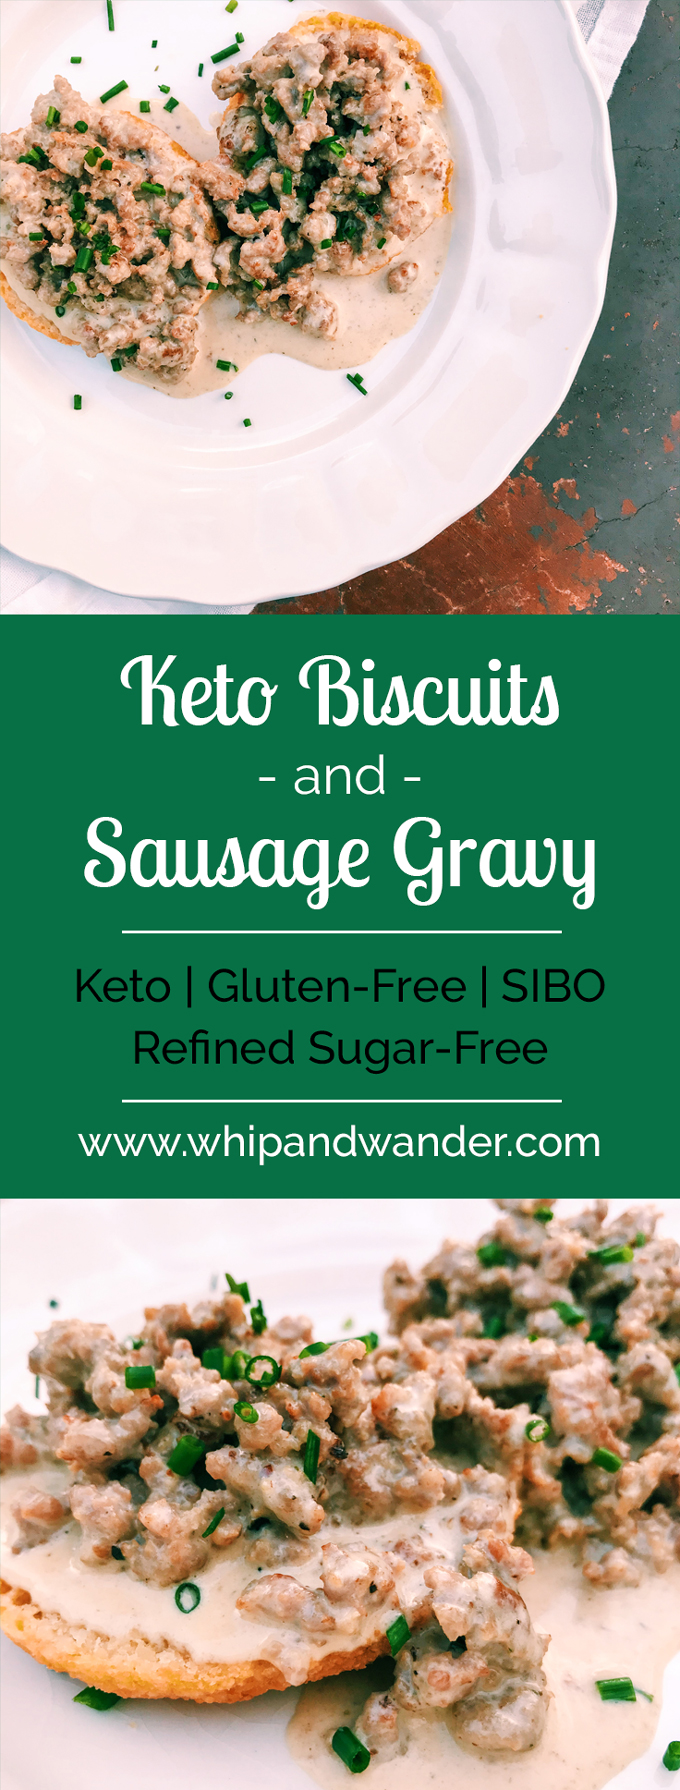 Keto Biscuits and Sausage Gravy